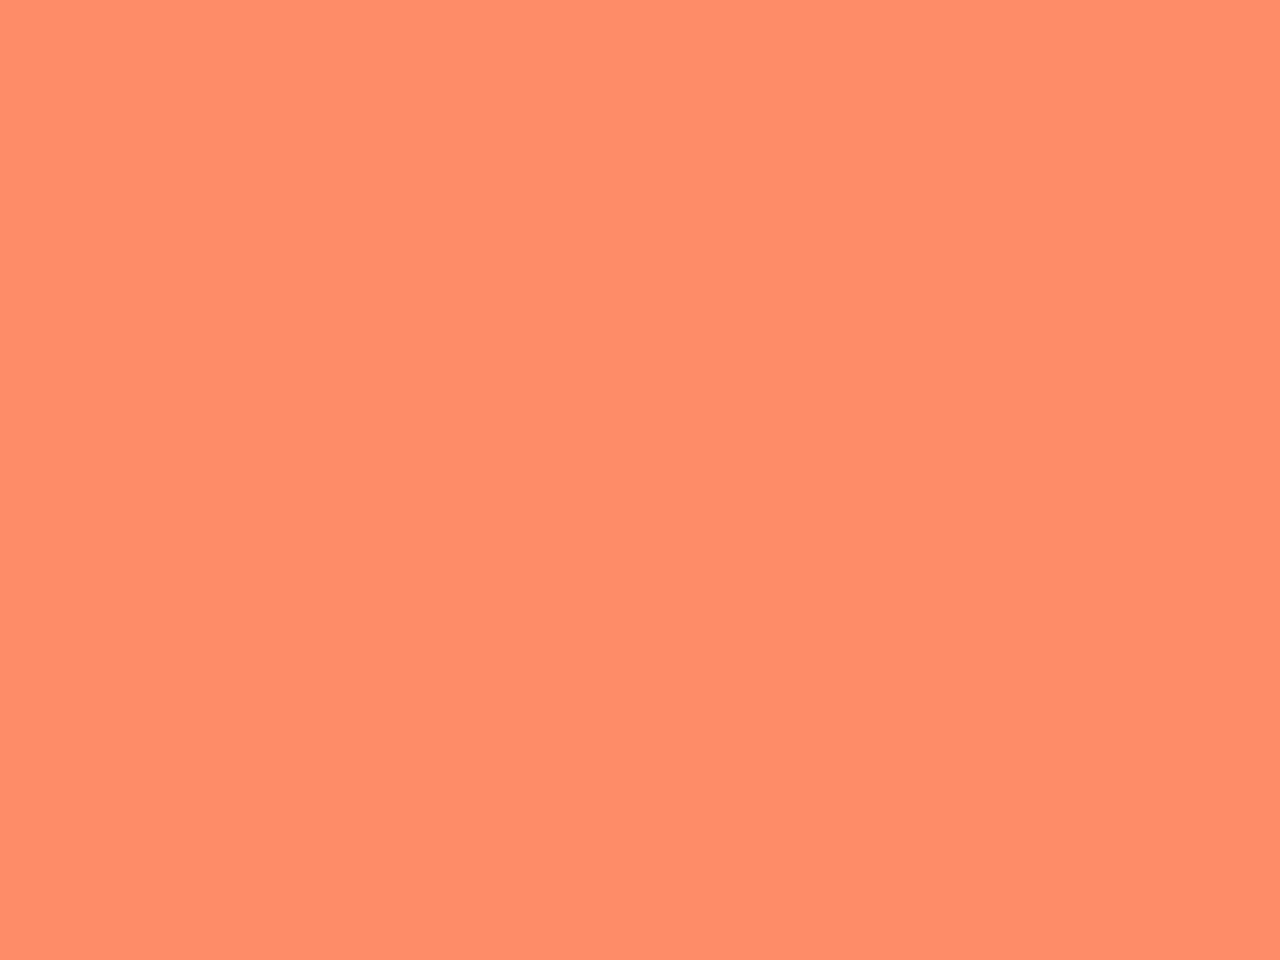 1280x960 Salmon Solid Color Background